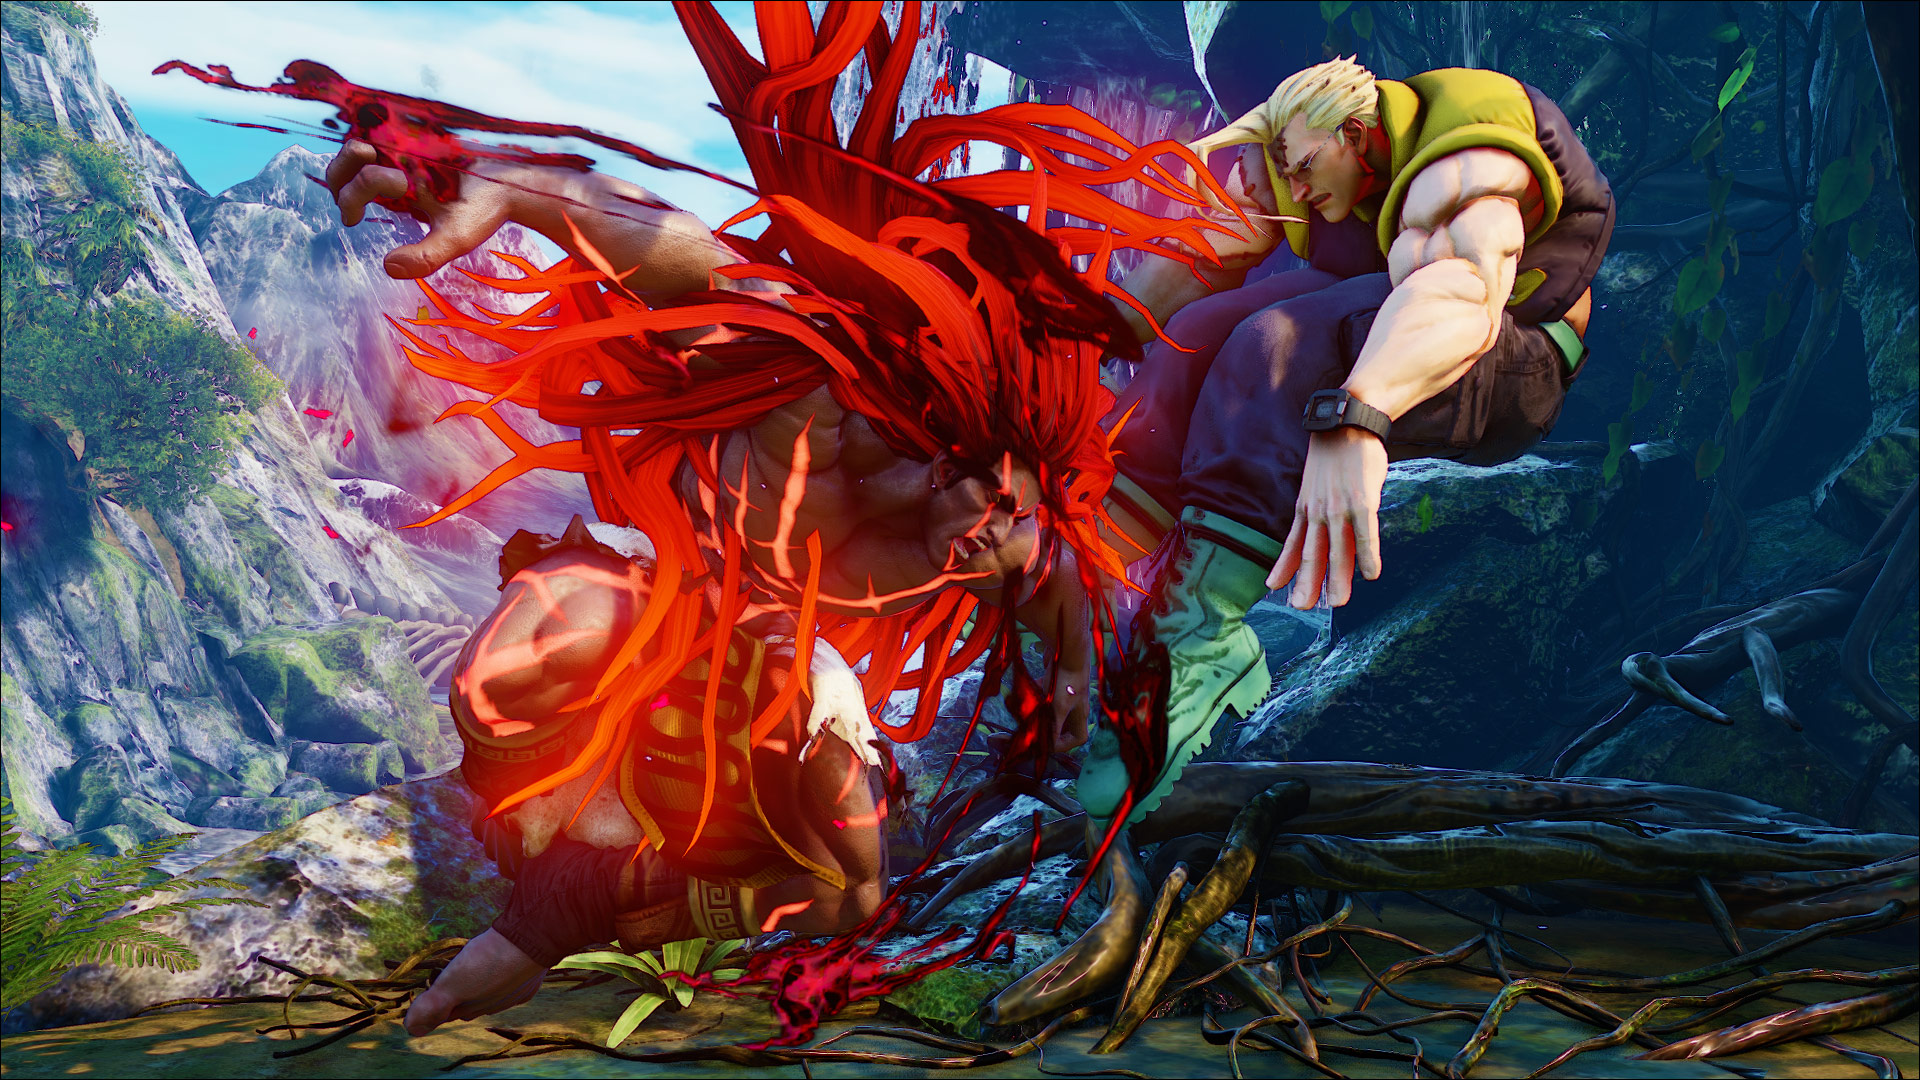 Official screenshots of Necalli in SF5 13 out of 17 image gallery